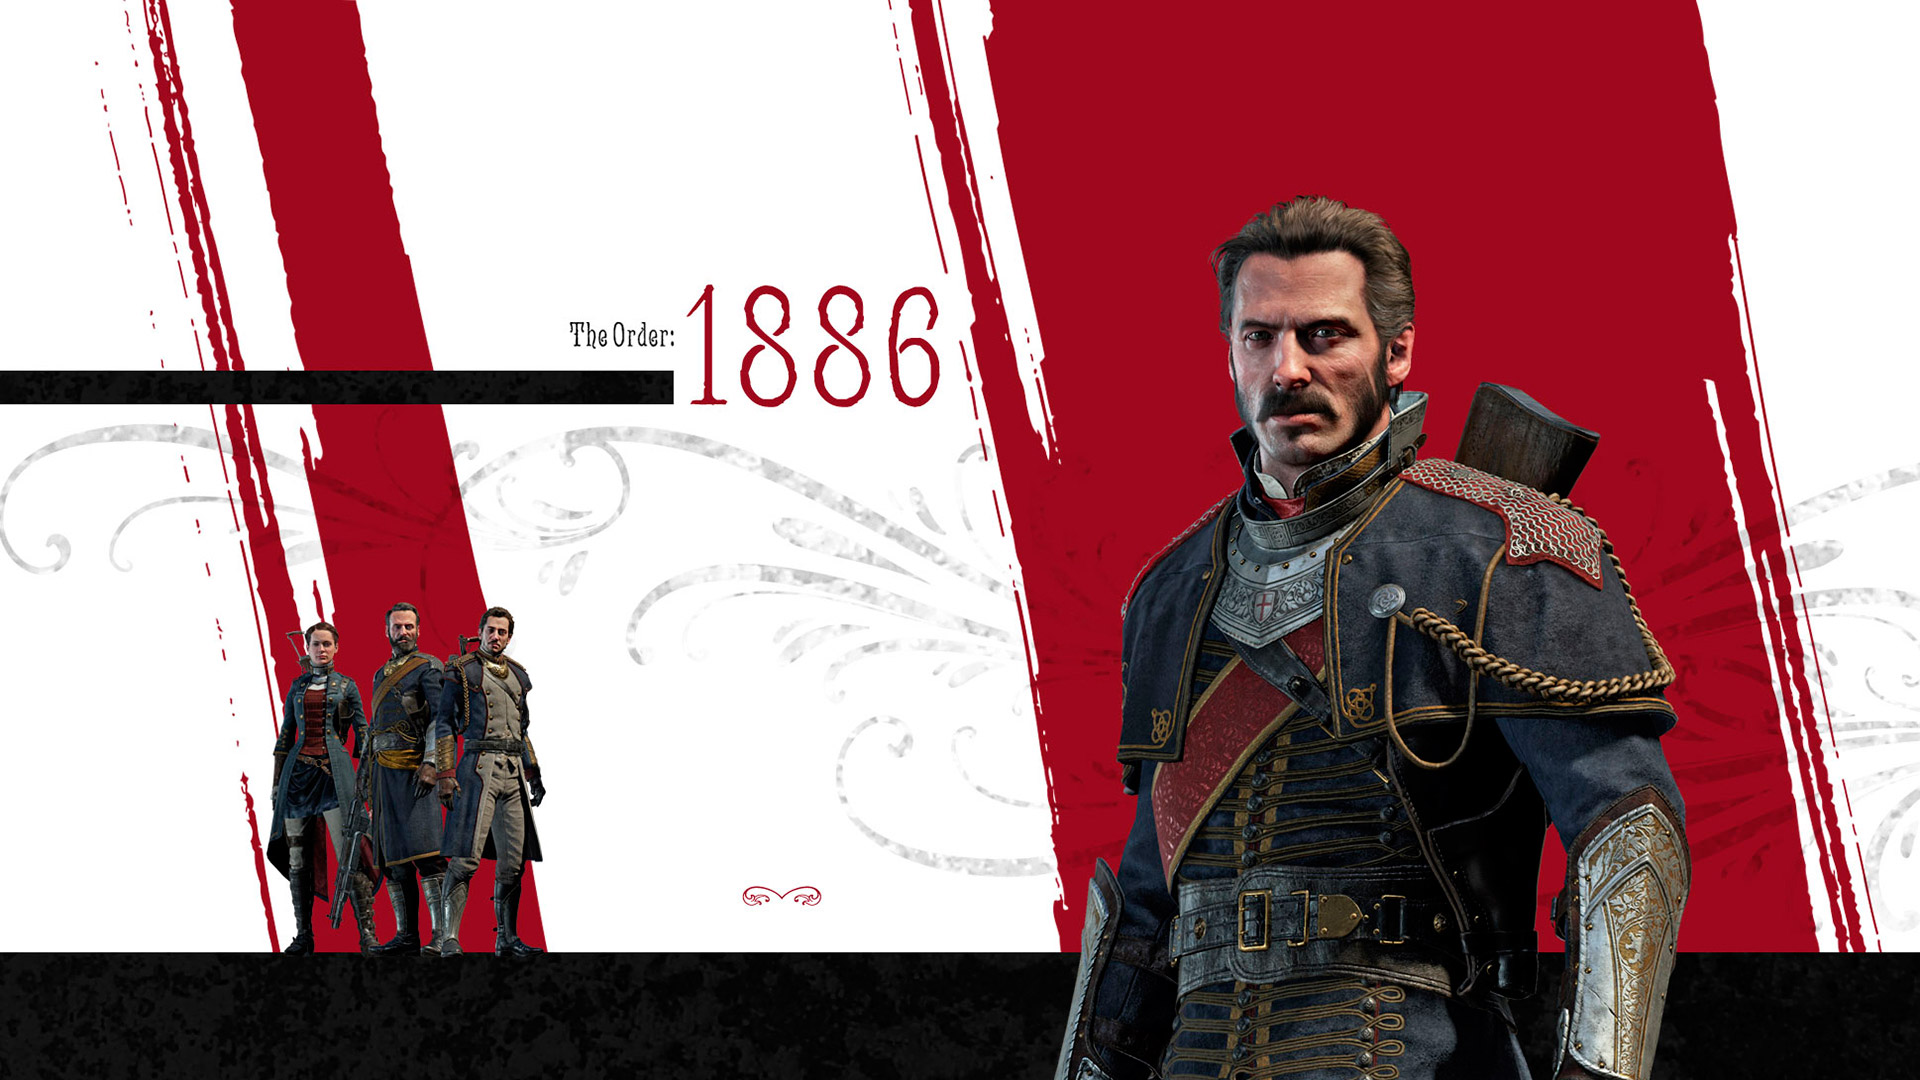 The Order 1886 wallpaper 3